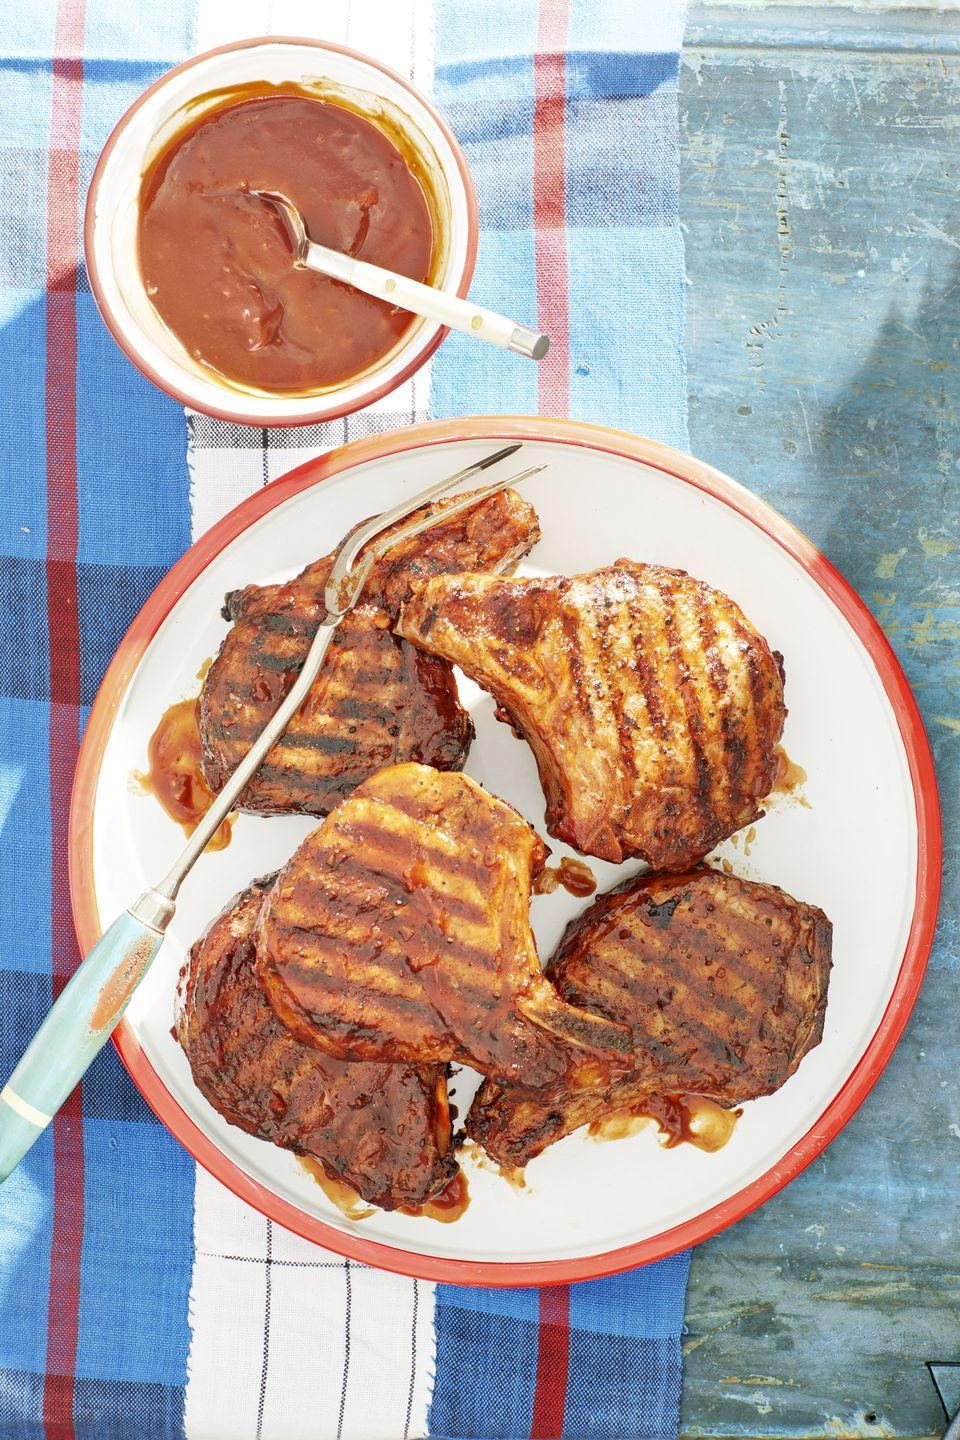 "<p>You might have to make a double—or even triple—batch of this whiskey-infused sauce. It's <em>that</em> good. </p><p><strong><a href=""https://www.countryliving.com/food-drinks/a21347095/bourbon-bbq-glazed-pork-chops-recipe/"" rel=""nofollow noopener"" target=""_blank"" data-ylk=""slk:Get the recipe."" class=""link rapid-noclick-resp"">Get the recipe.</a></strong></p><p><strong><a class=""link rapid-noclick-resp"" href=""https://www.amazon.com/Cuisinart-GR-4N-Griddler-Silver-Black/dp/B002YD99Y4?tag=syn-yahoo-20&ascsubtag=%5Bartid%7C10050.g.648%5Bsrc%7Cyahoo-us"" rel=""nofollow noopener"" target=""_blank"" data-ylk=""slk:SHOP GRILLS"">SHOP GRILLS</a><br></strong></p>"